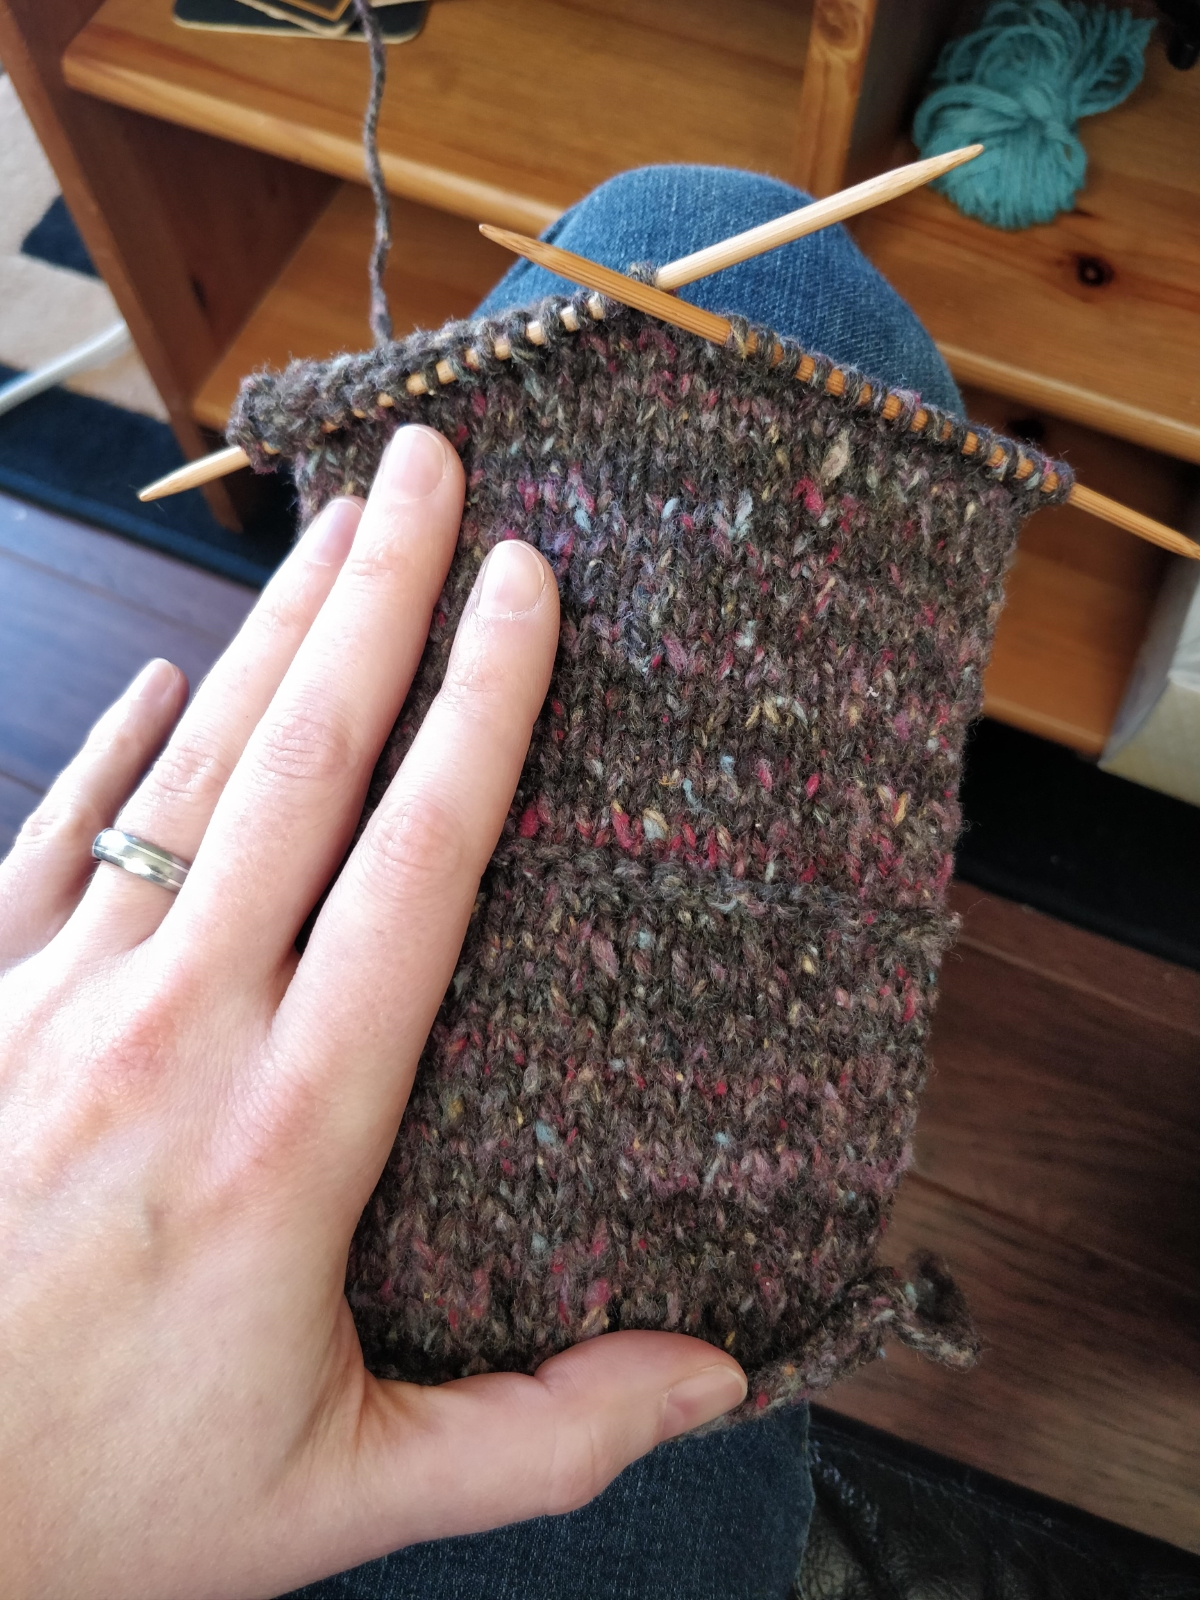 A swatch of tweedy gray yarn